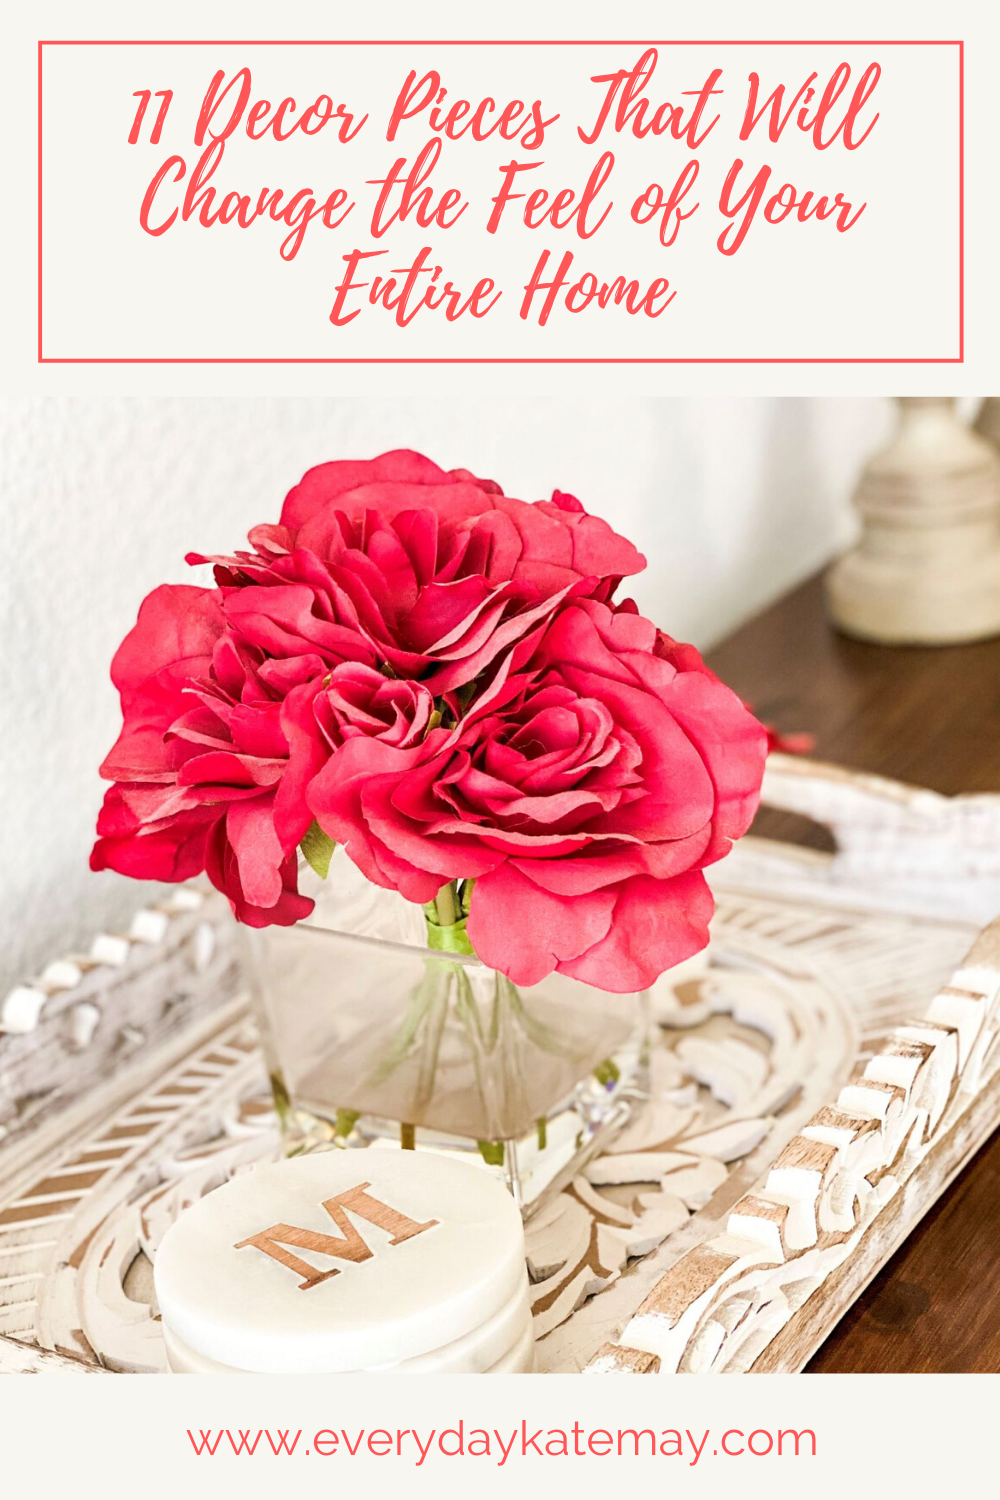 If you're looking for some home decor ideas for your living room on a budget, here's 11 decor pieces and DIY ways to decorate your home. #homedecor #decoronabudget #decorateyourhome #DIYdecor #livingroomdecor